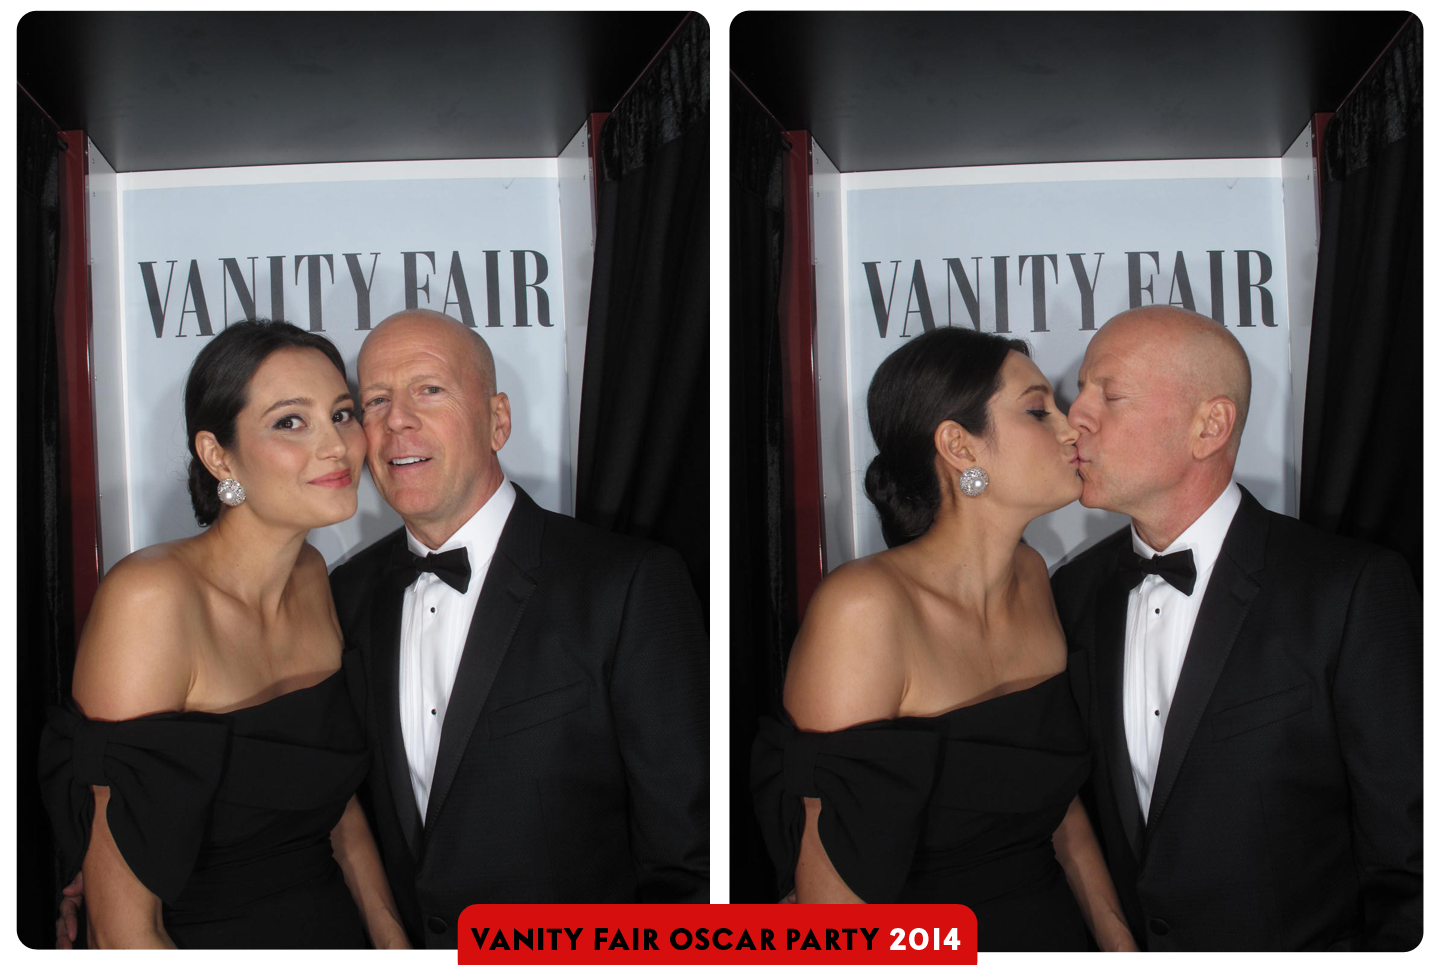 53158786b27a7dc92f3f8a3e_ss23-bruce-willis-vanity-fair-photo-booth.png